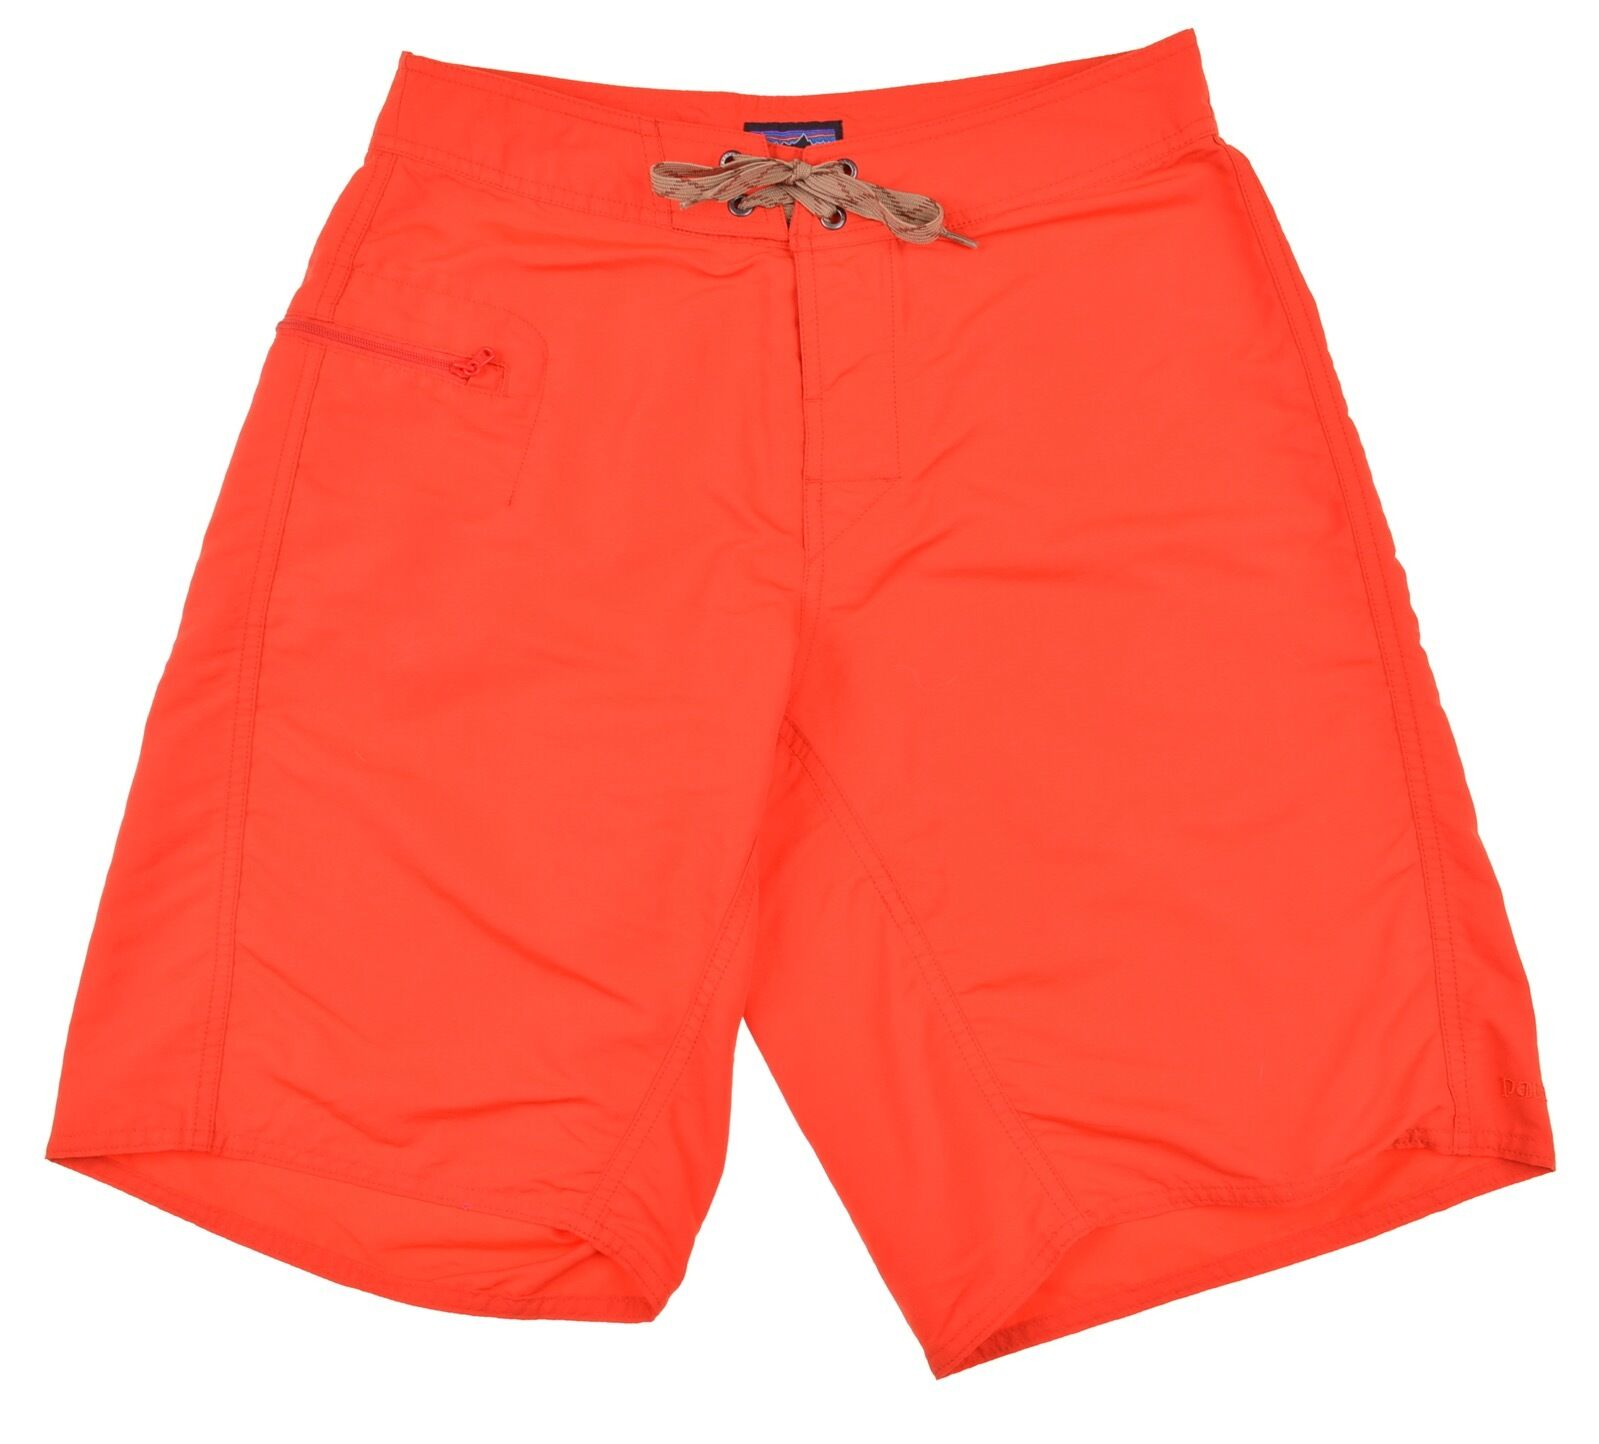 Patagonia Solid orange Red Mens Unlined Nylon Board Shorts Swim Trunks 28